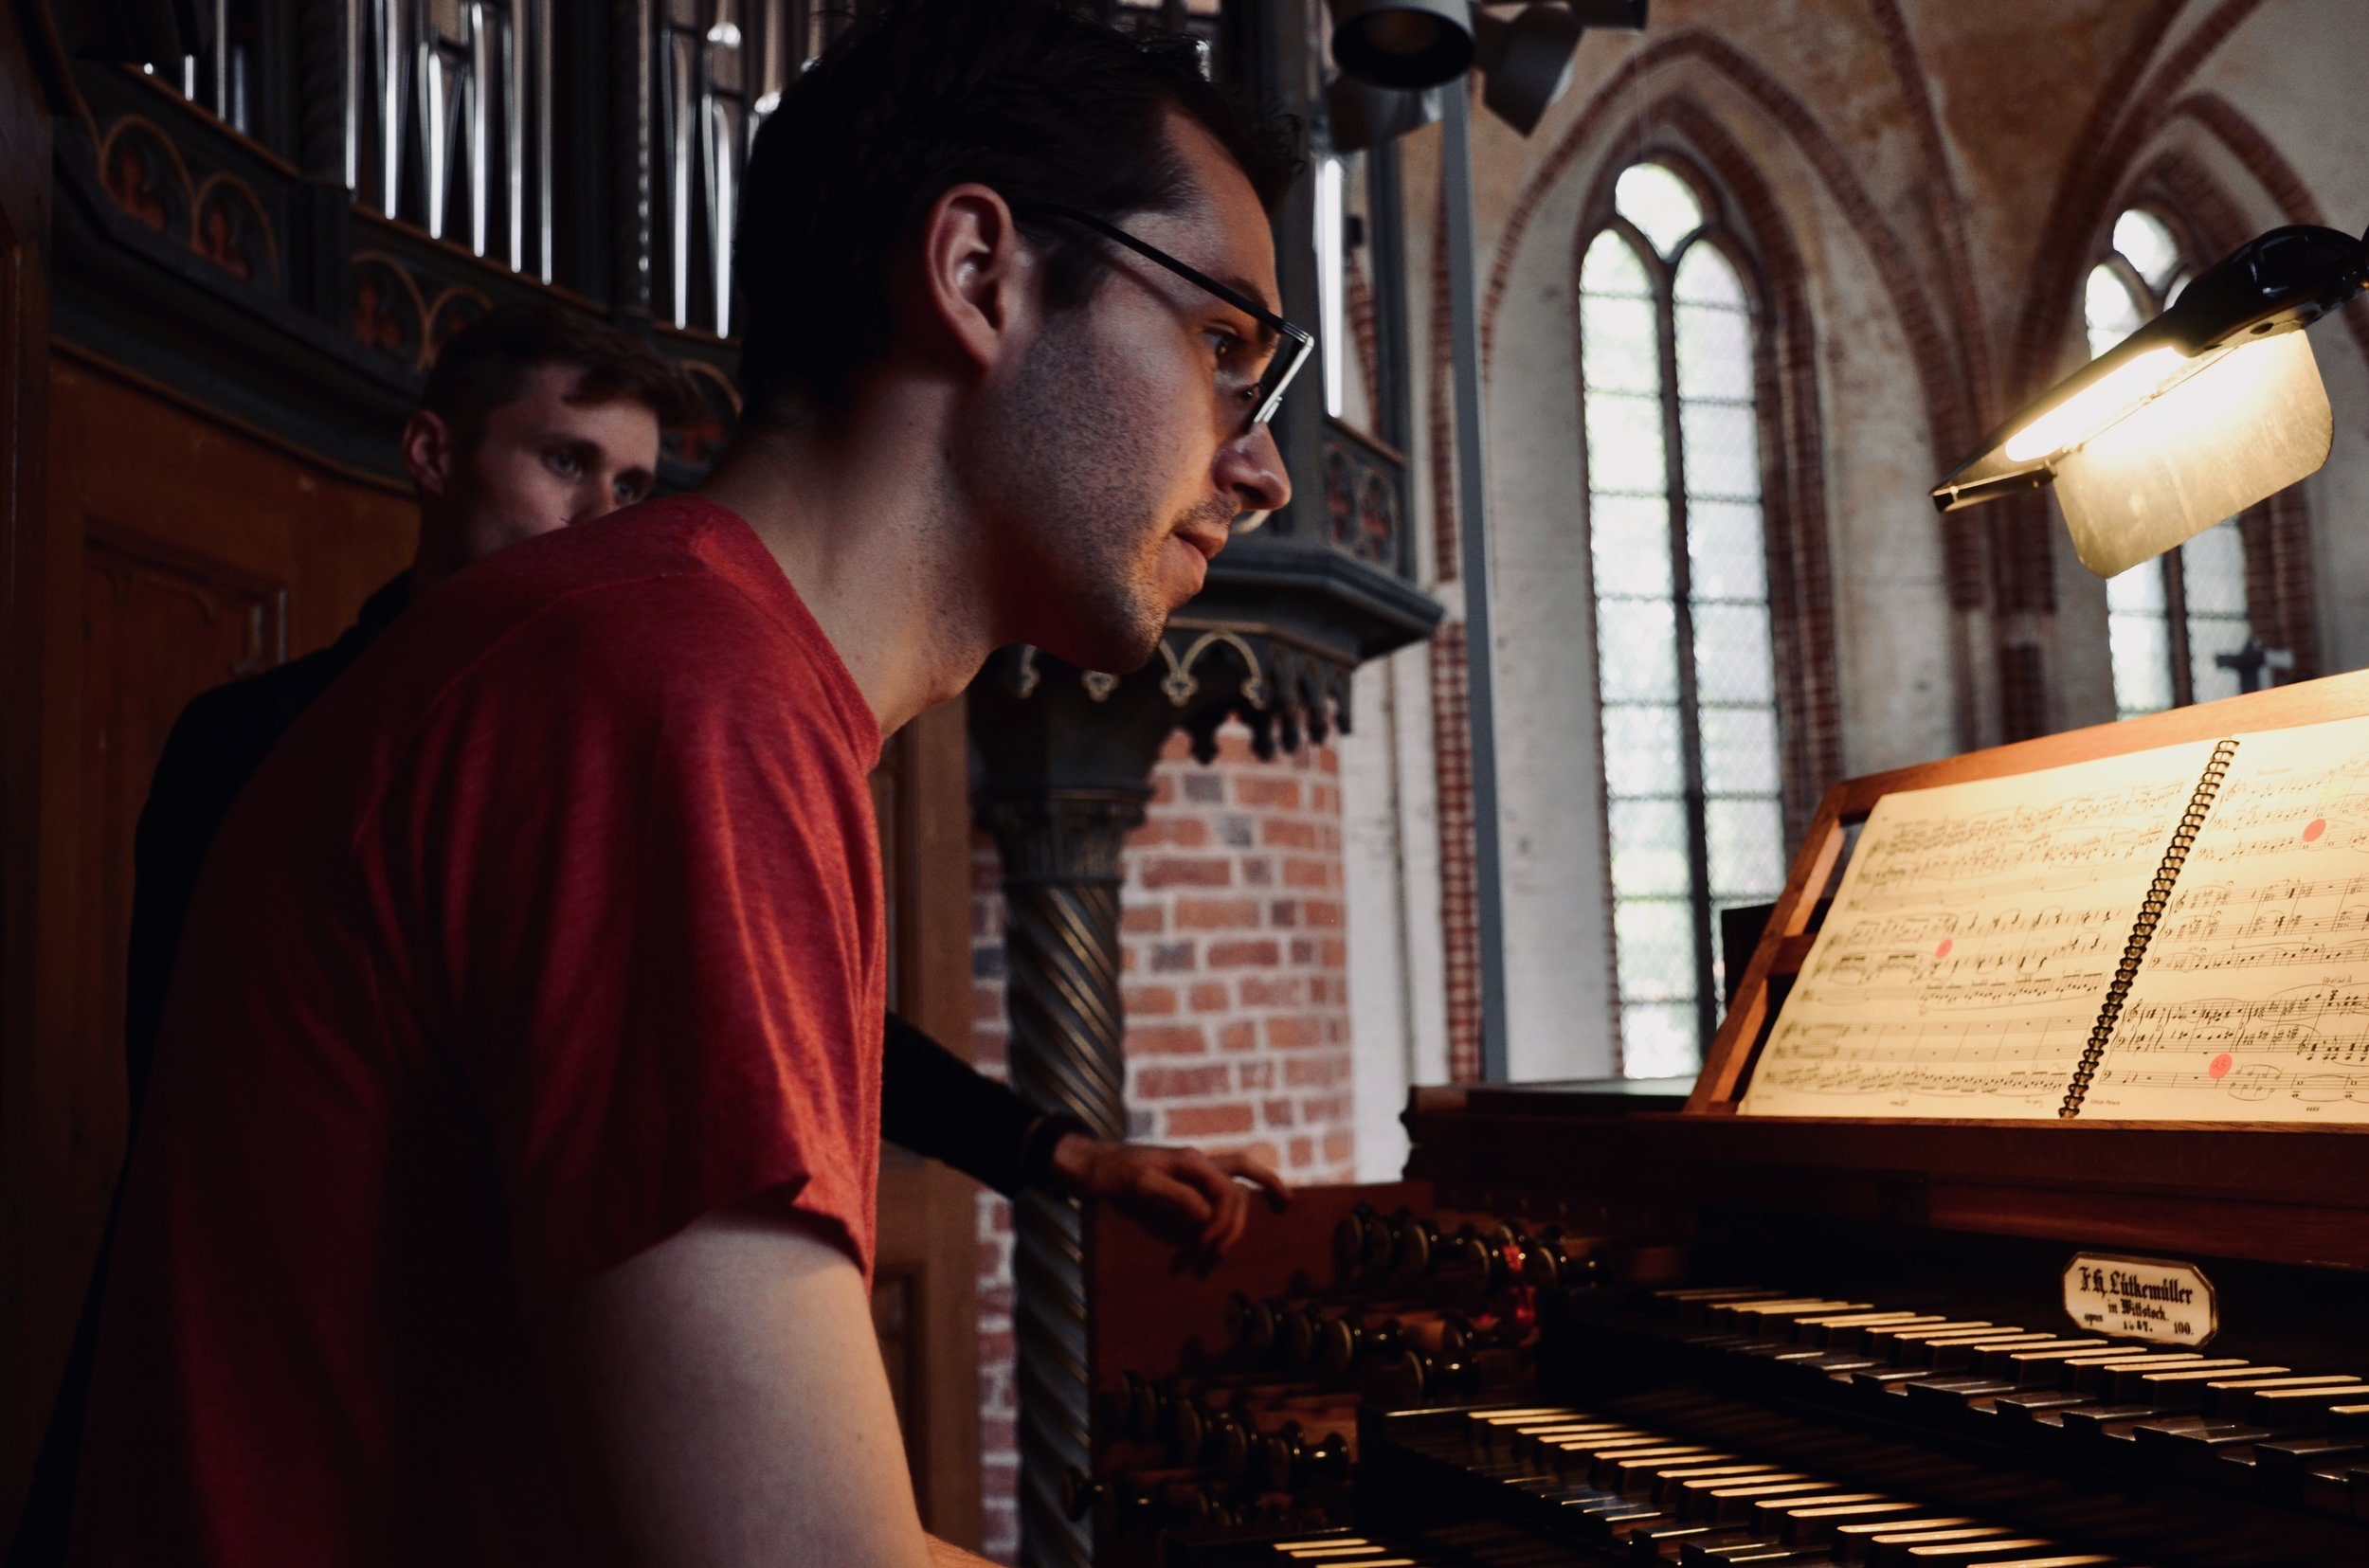 Nick Capozzoli plays the 1867 Lütkemüller Organ, St. Petri-Kirche, Seehausen.